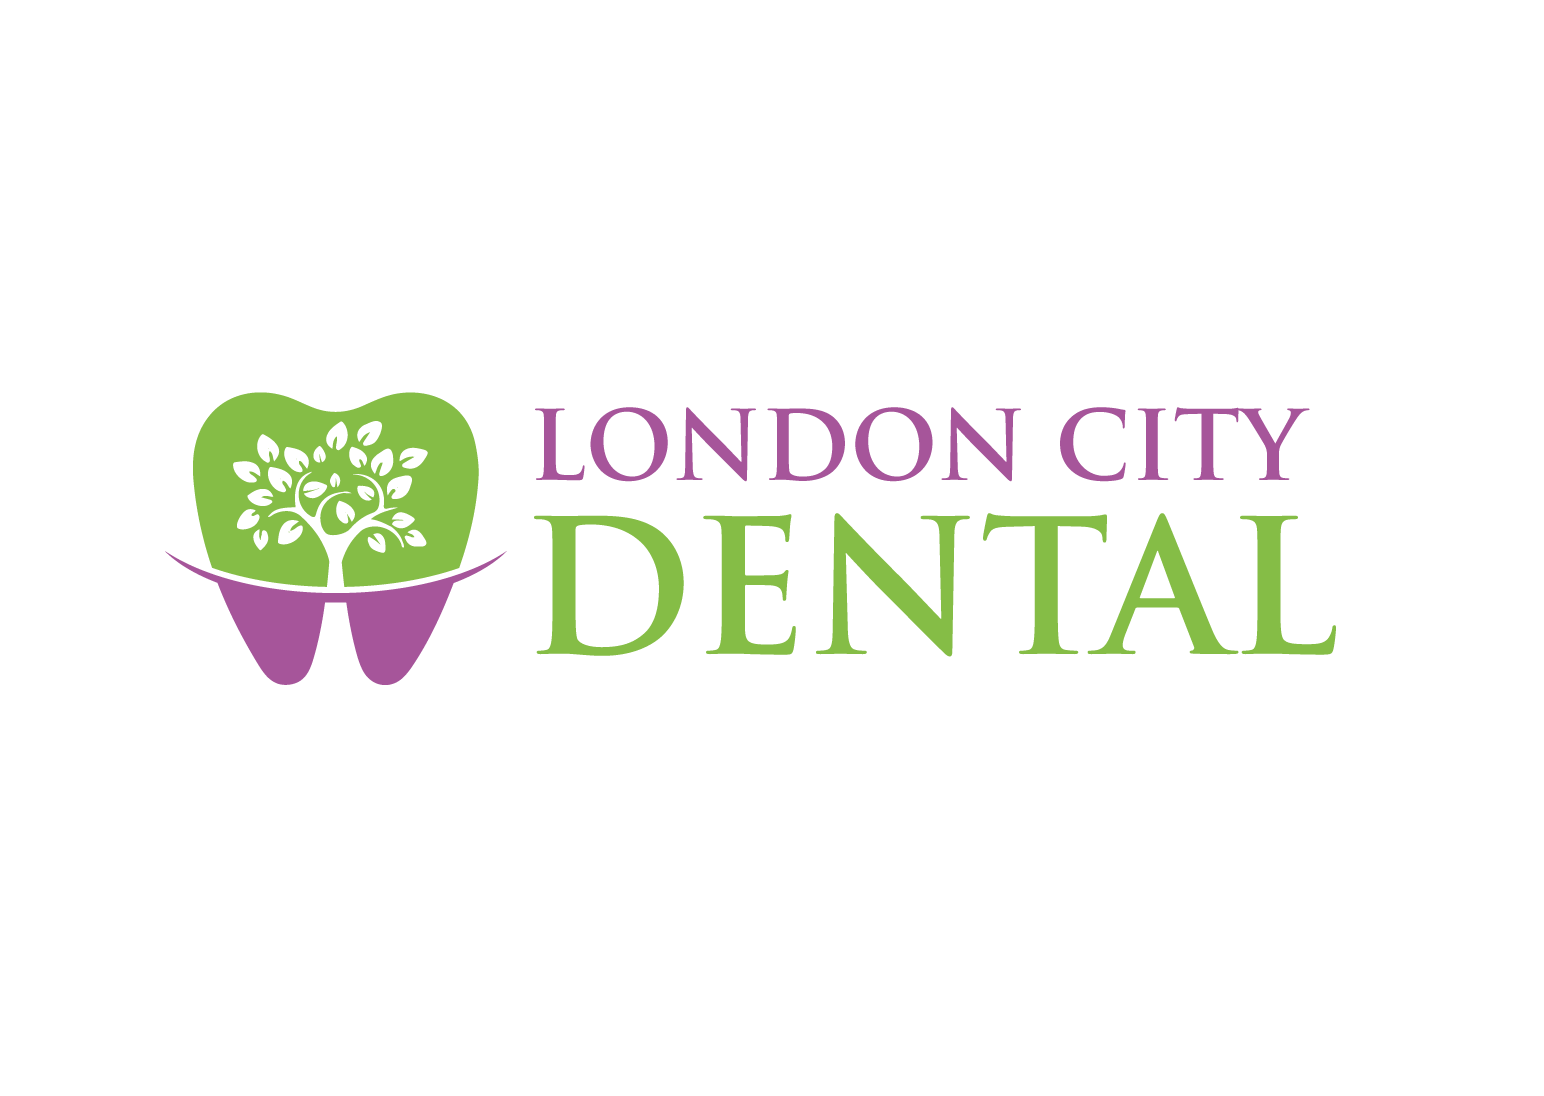 London City Dental